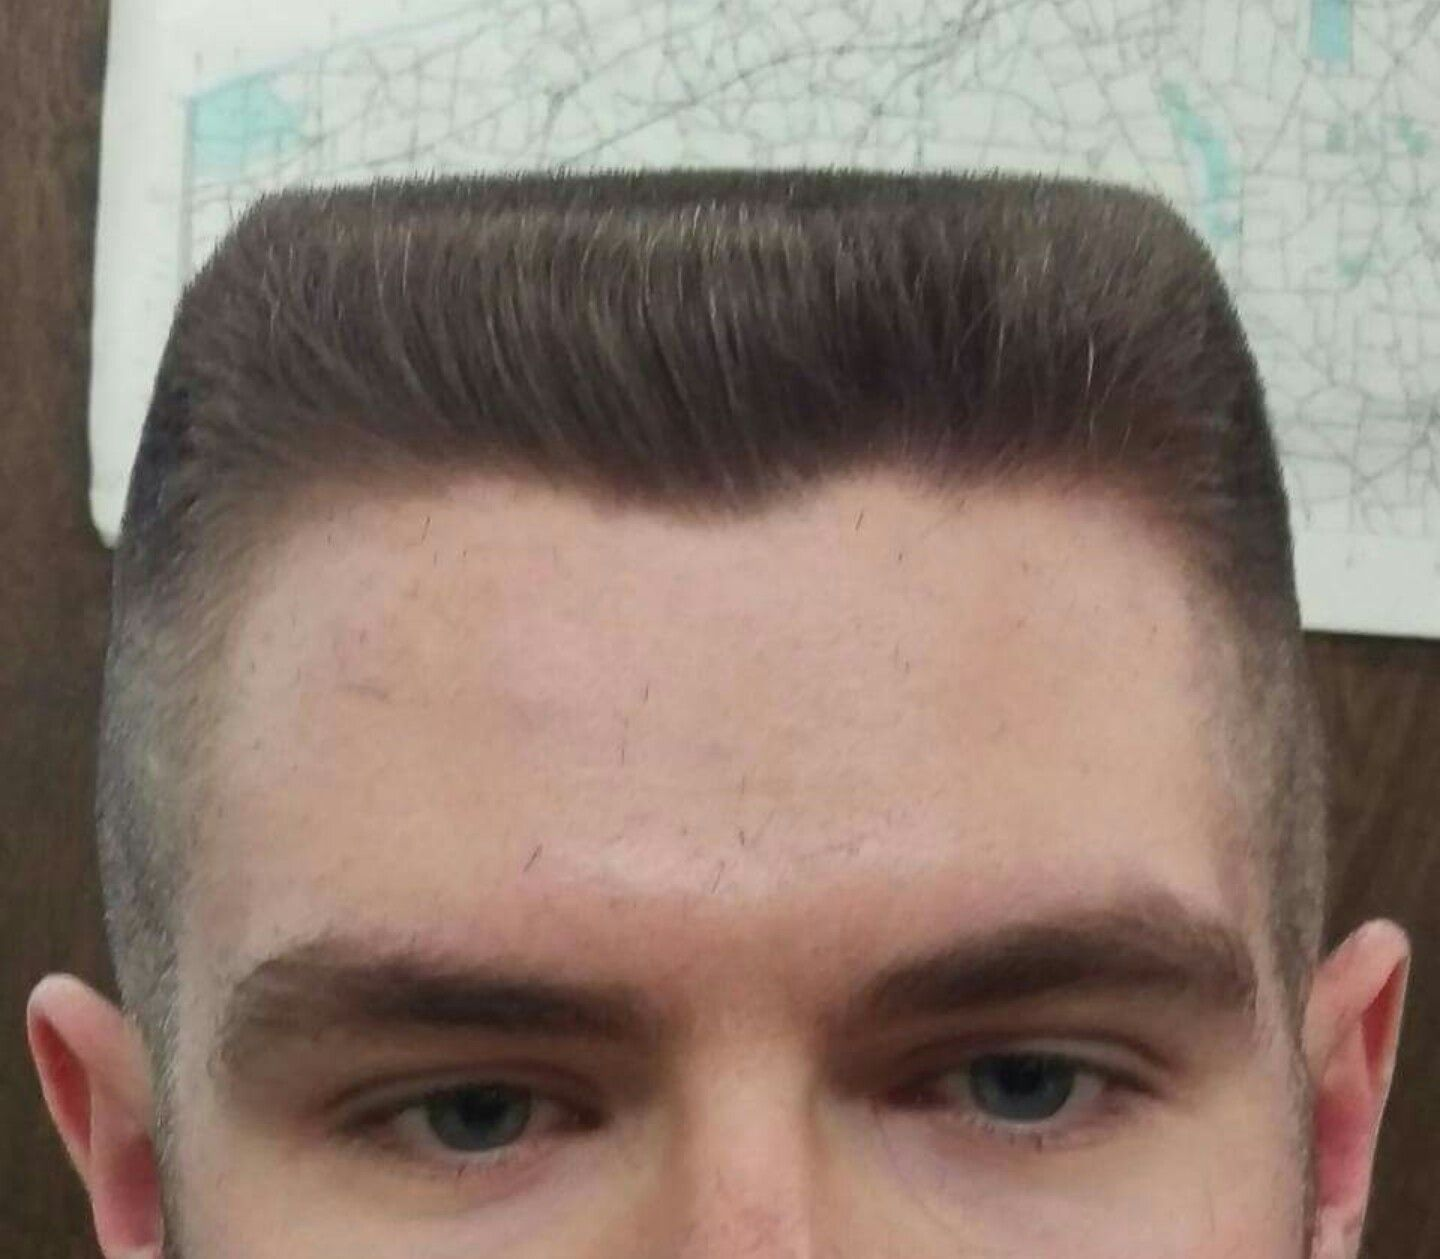 Hairstyle Trends 27 Coolest Men S Flat Top Haircuts And How To Get It Photos Collection Flat Top Haircut Mens Hairstyles Short Mens Hairstyle Images